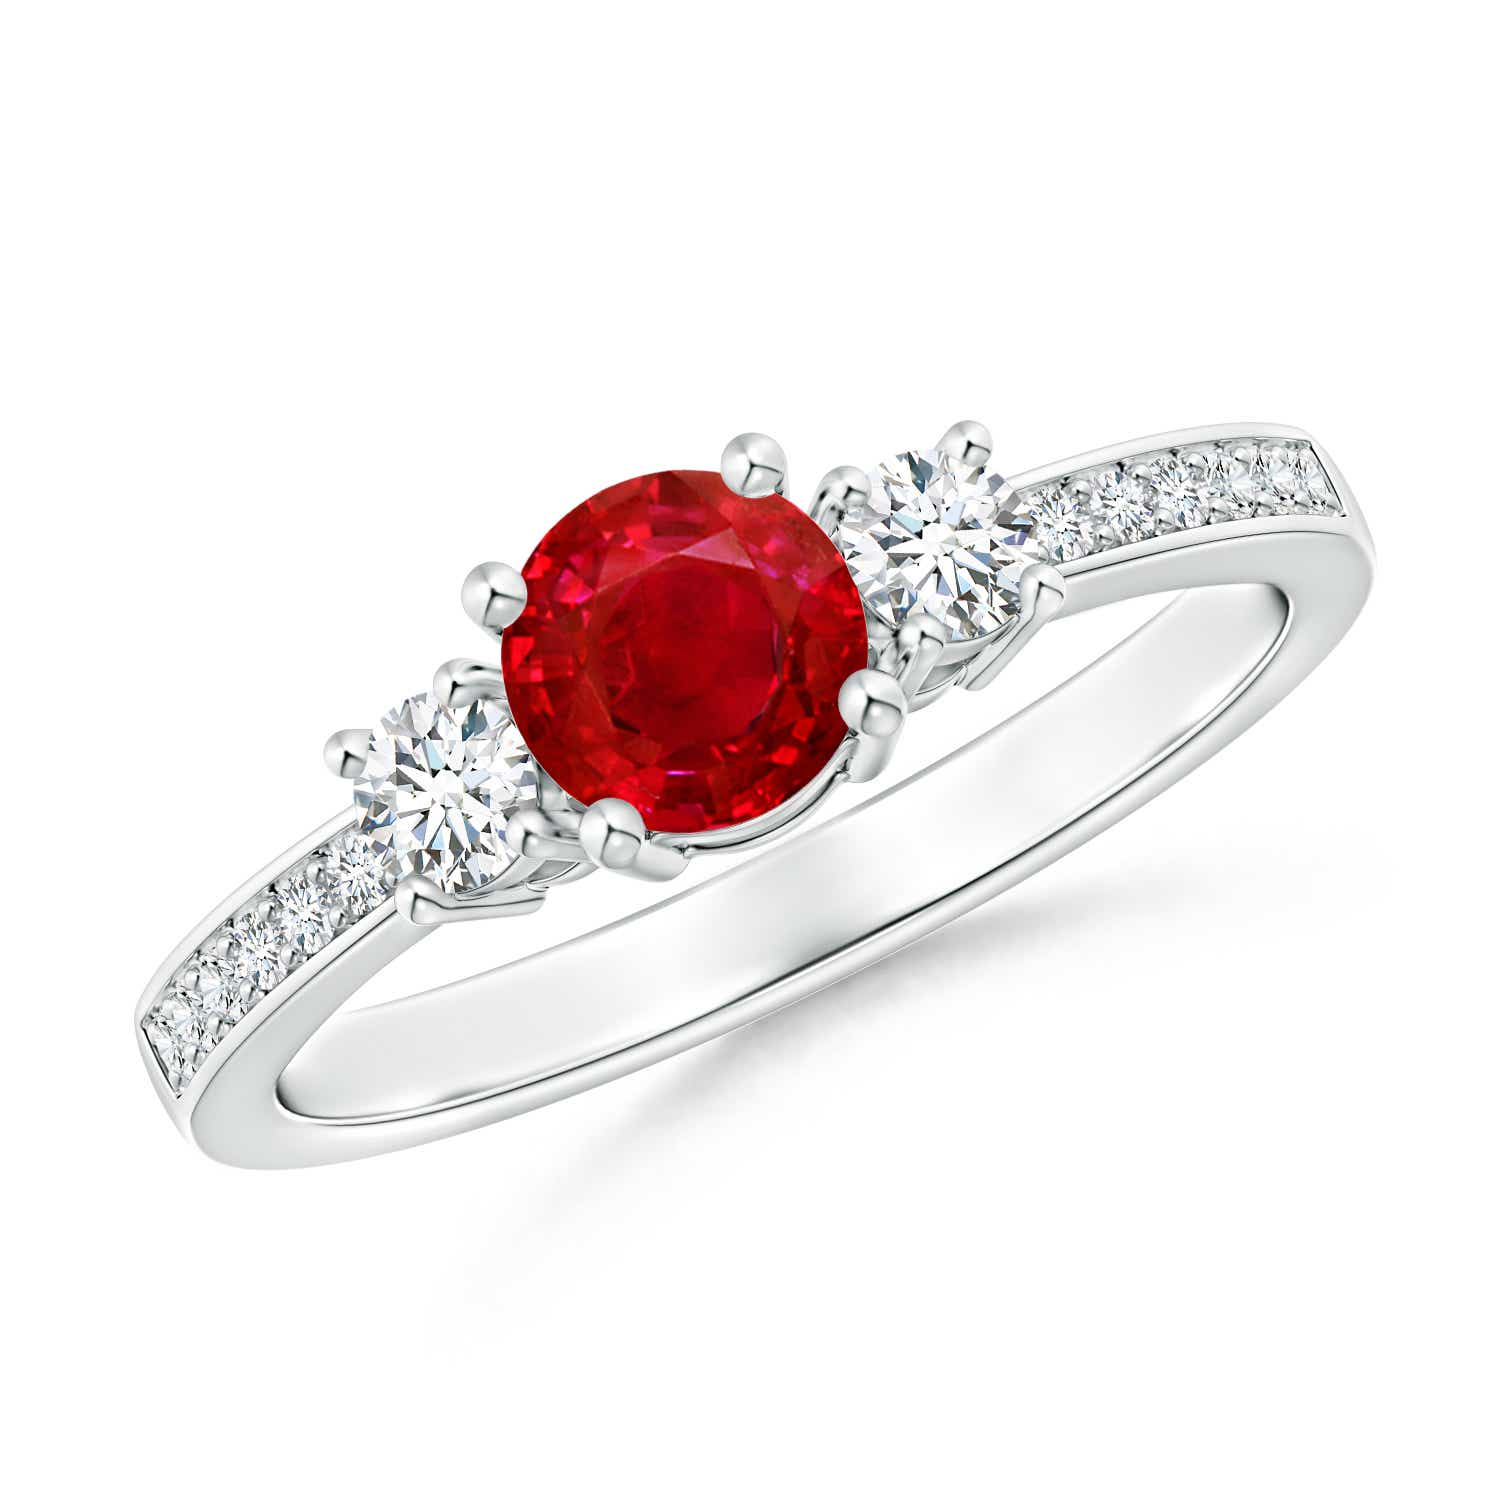 Angara Classic Diamond Halo Ruby Engagement Ring in 14k White Gold k6fRTs